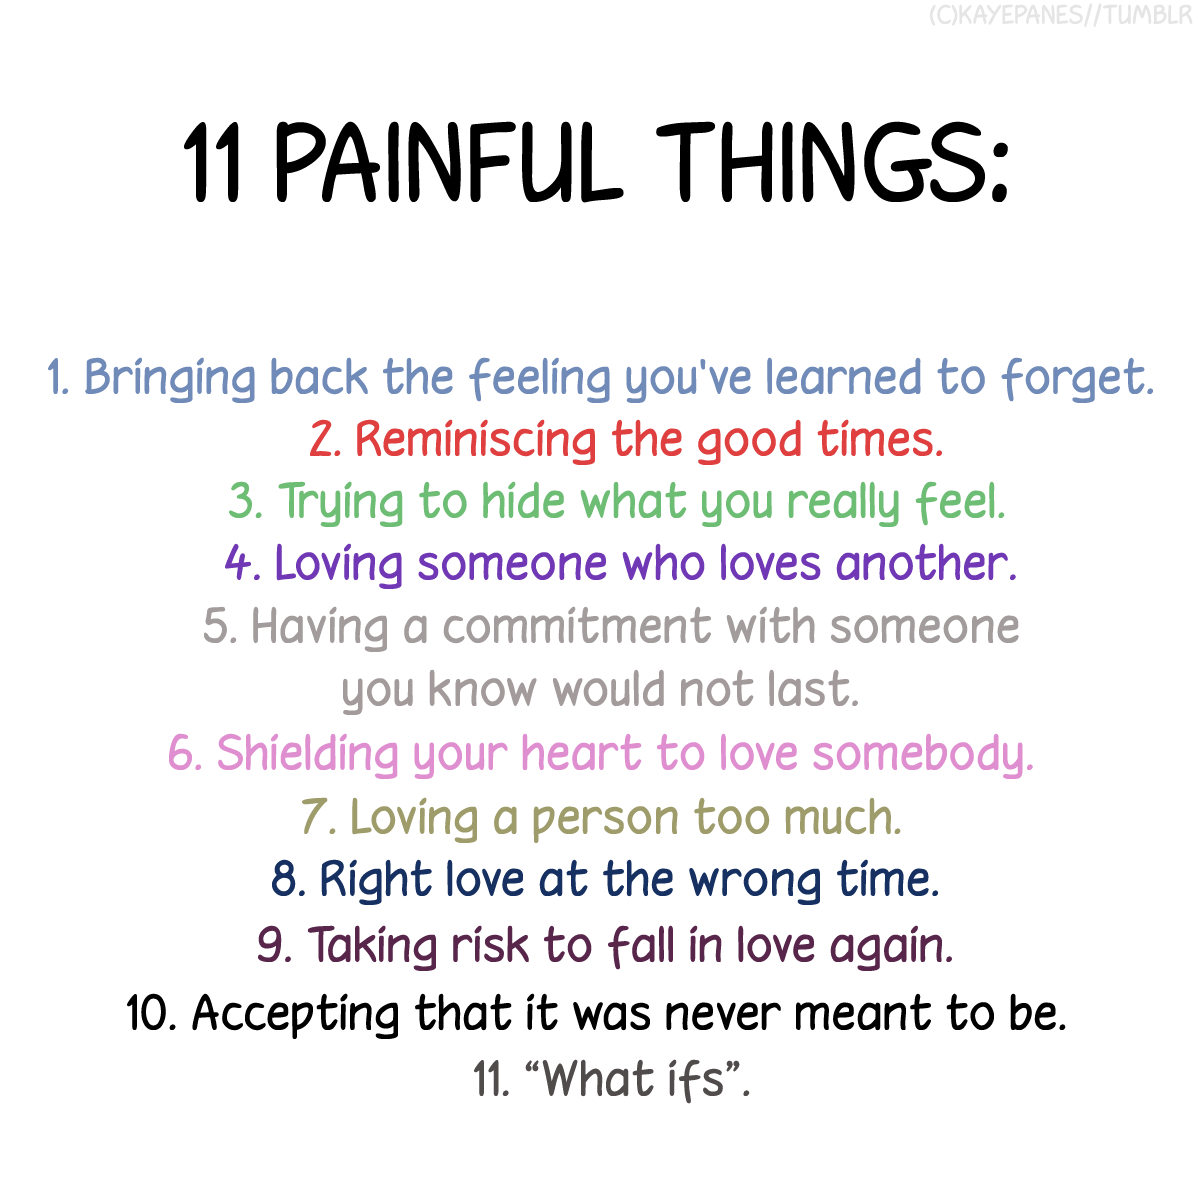 Cute Life Quotes Delectable Cute Life Quotes 11 Painful Things  Picsmine